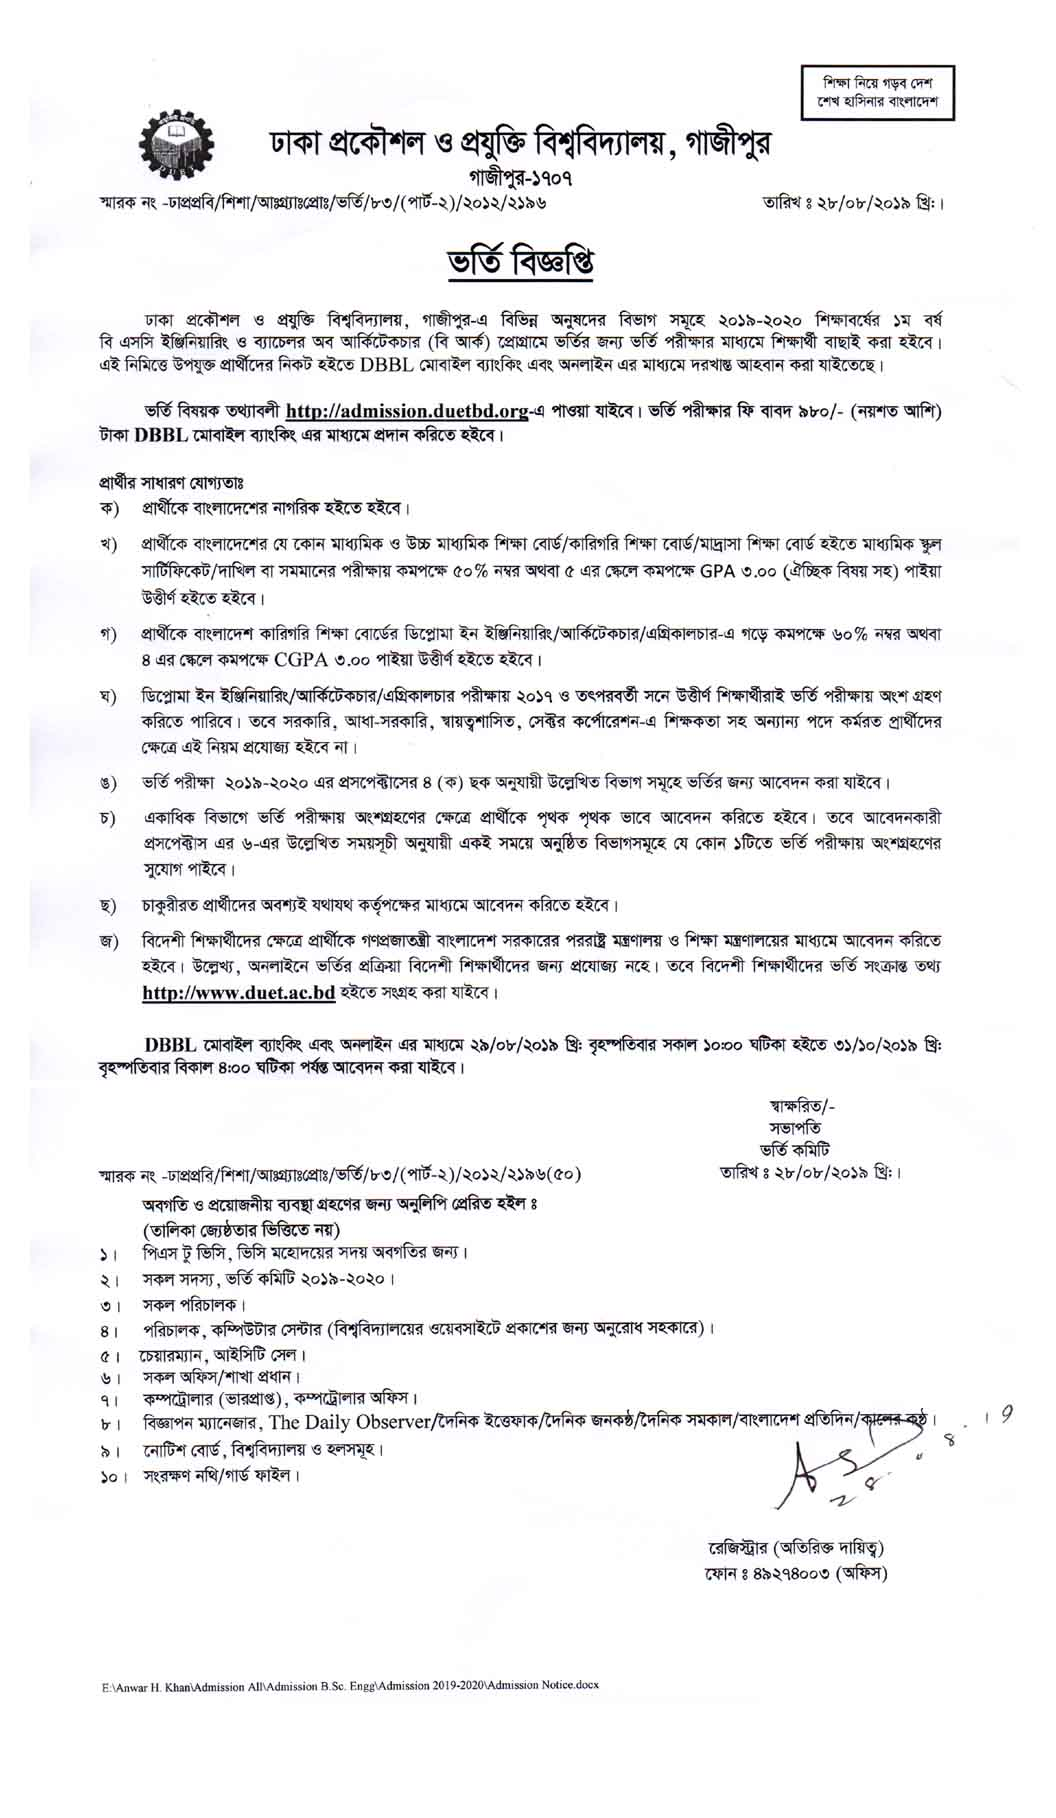 Dhaka Engineering & Technology Admission Circular 2019-20